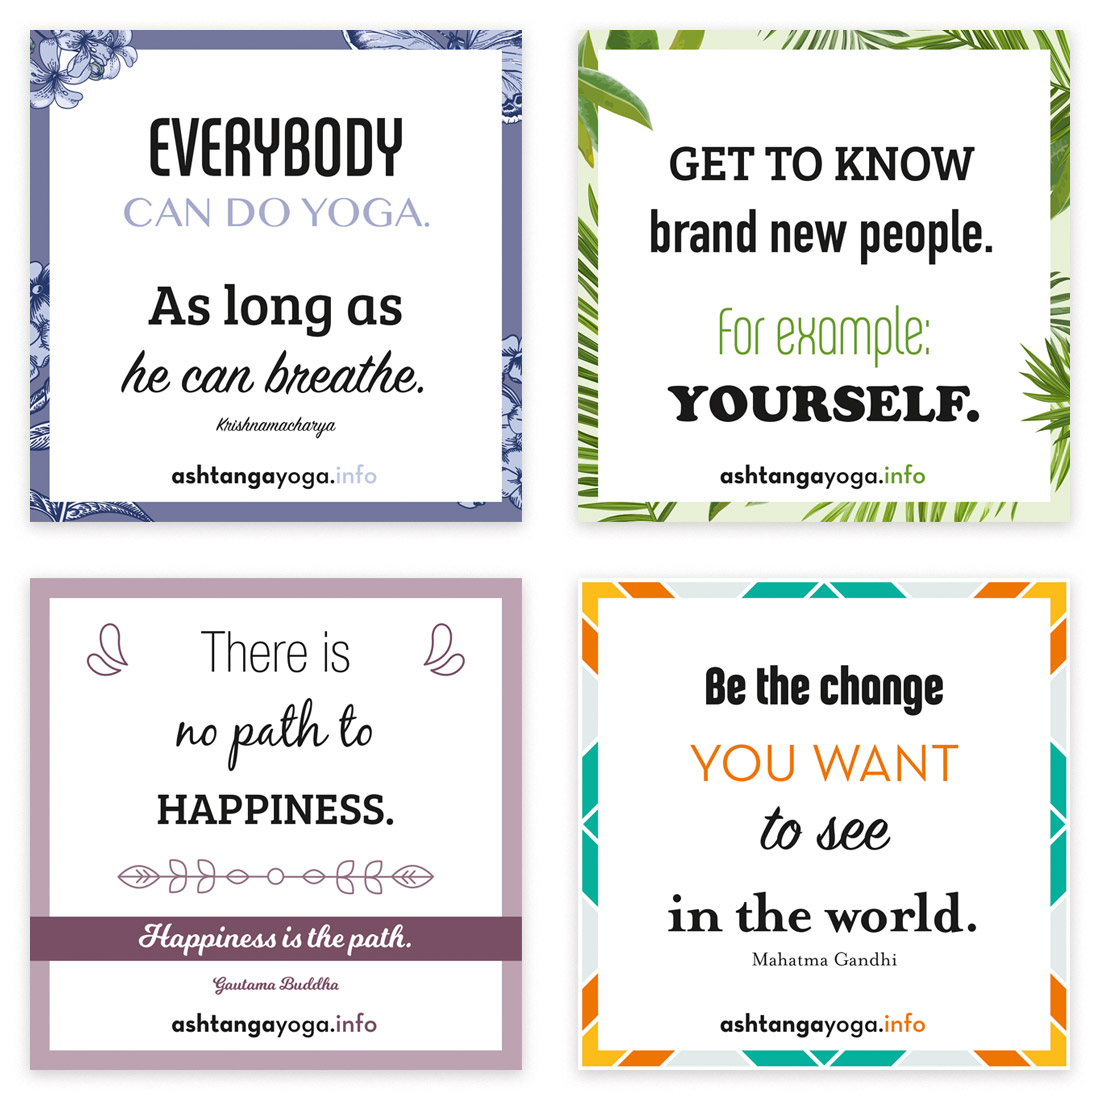 AYI, Yoga, Printdesign, aufkleber, marketing, marketingmaterial